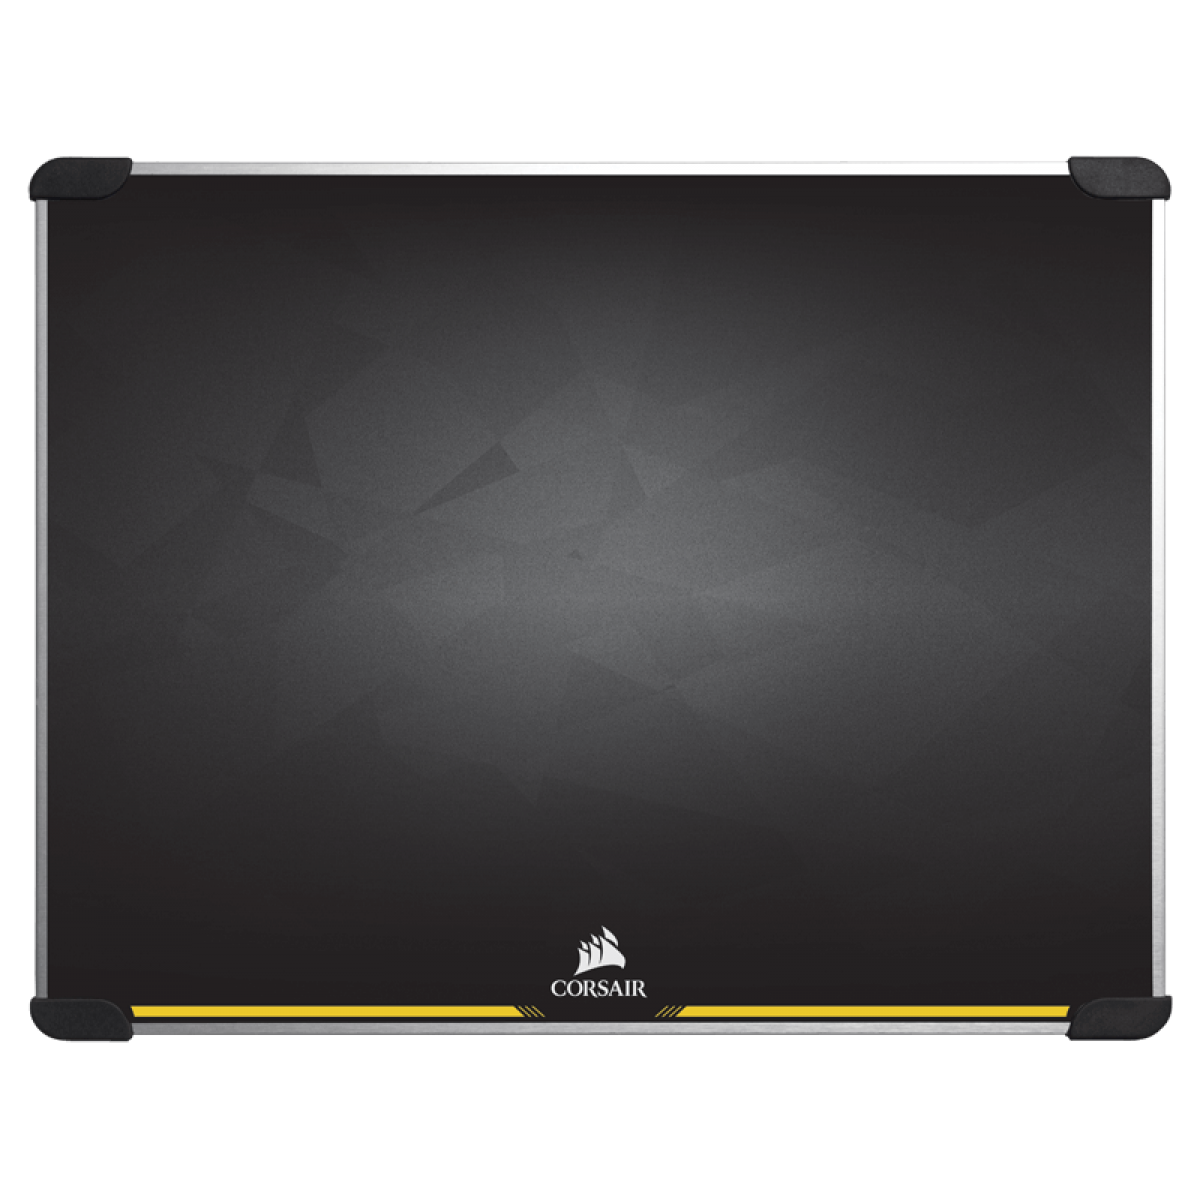 Mouse Pad Corsair Gamer MM600 CH-9000104-WW Dual Sided Aluminum